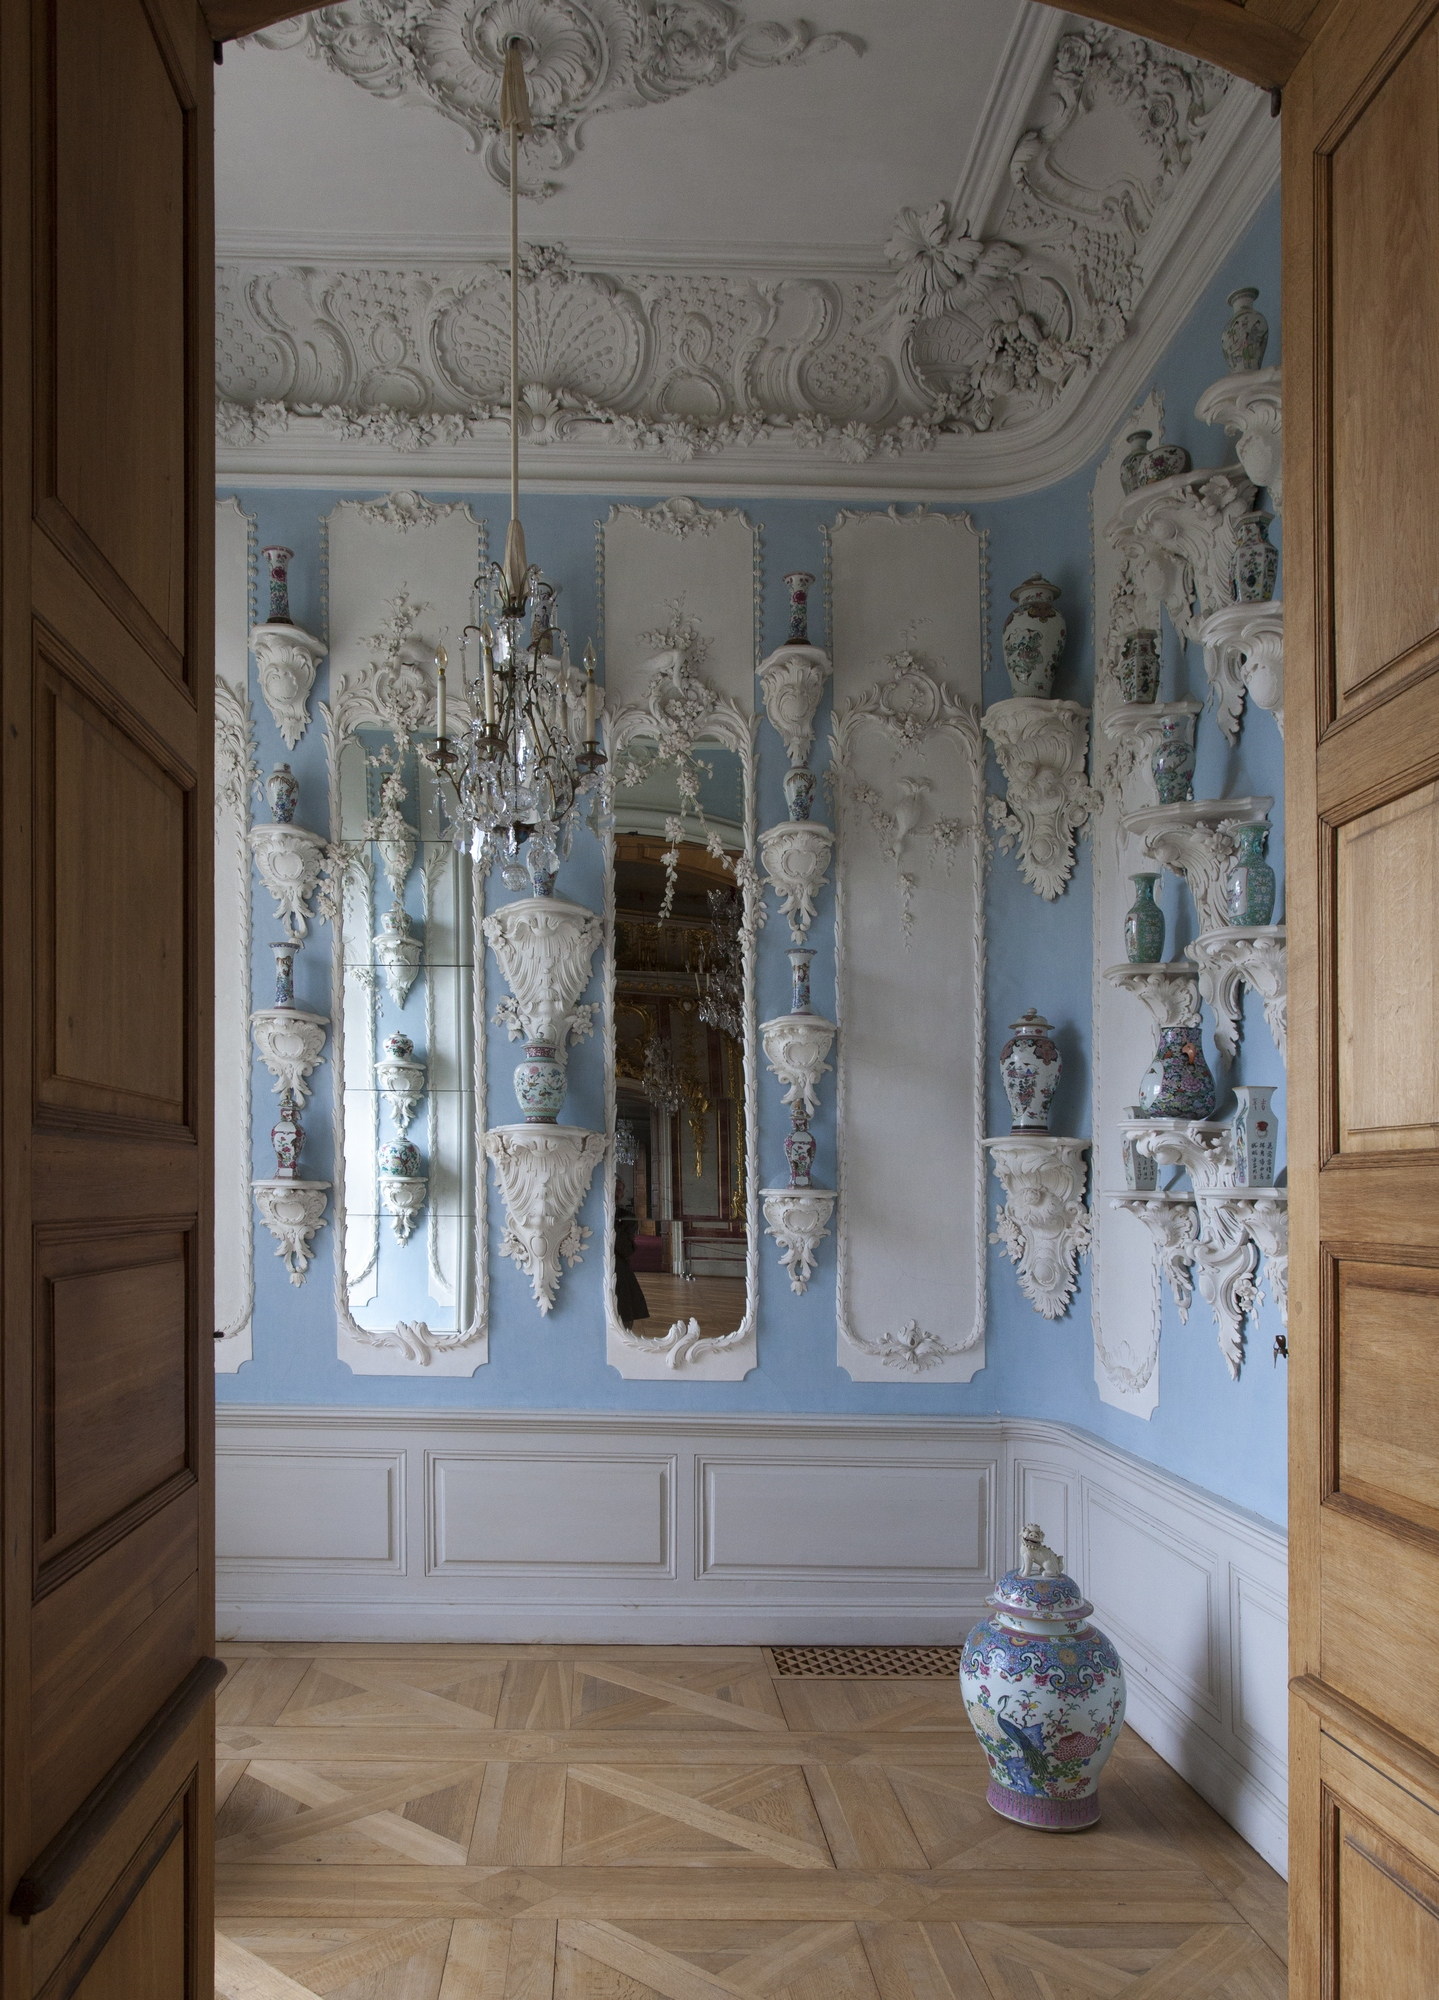 The Porcelain Cabinet is designed as a contrast to the splendour of the Gold Hall. The room displays Oriental porcelain vases placed on thirty-four decorative consoles.